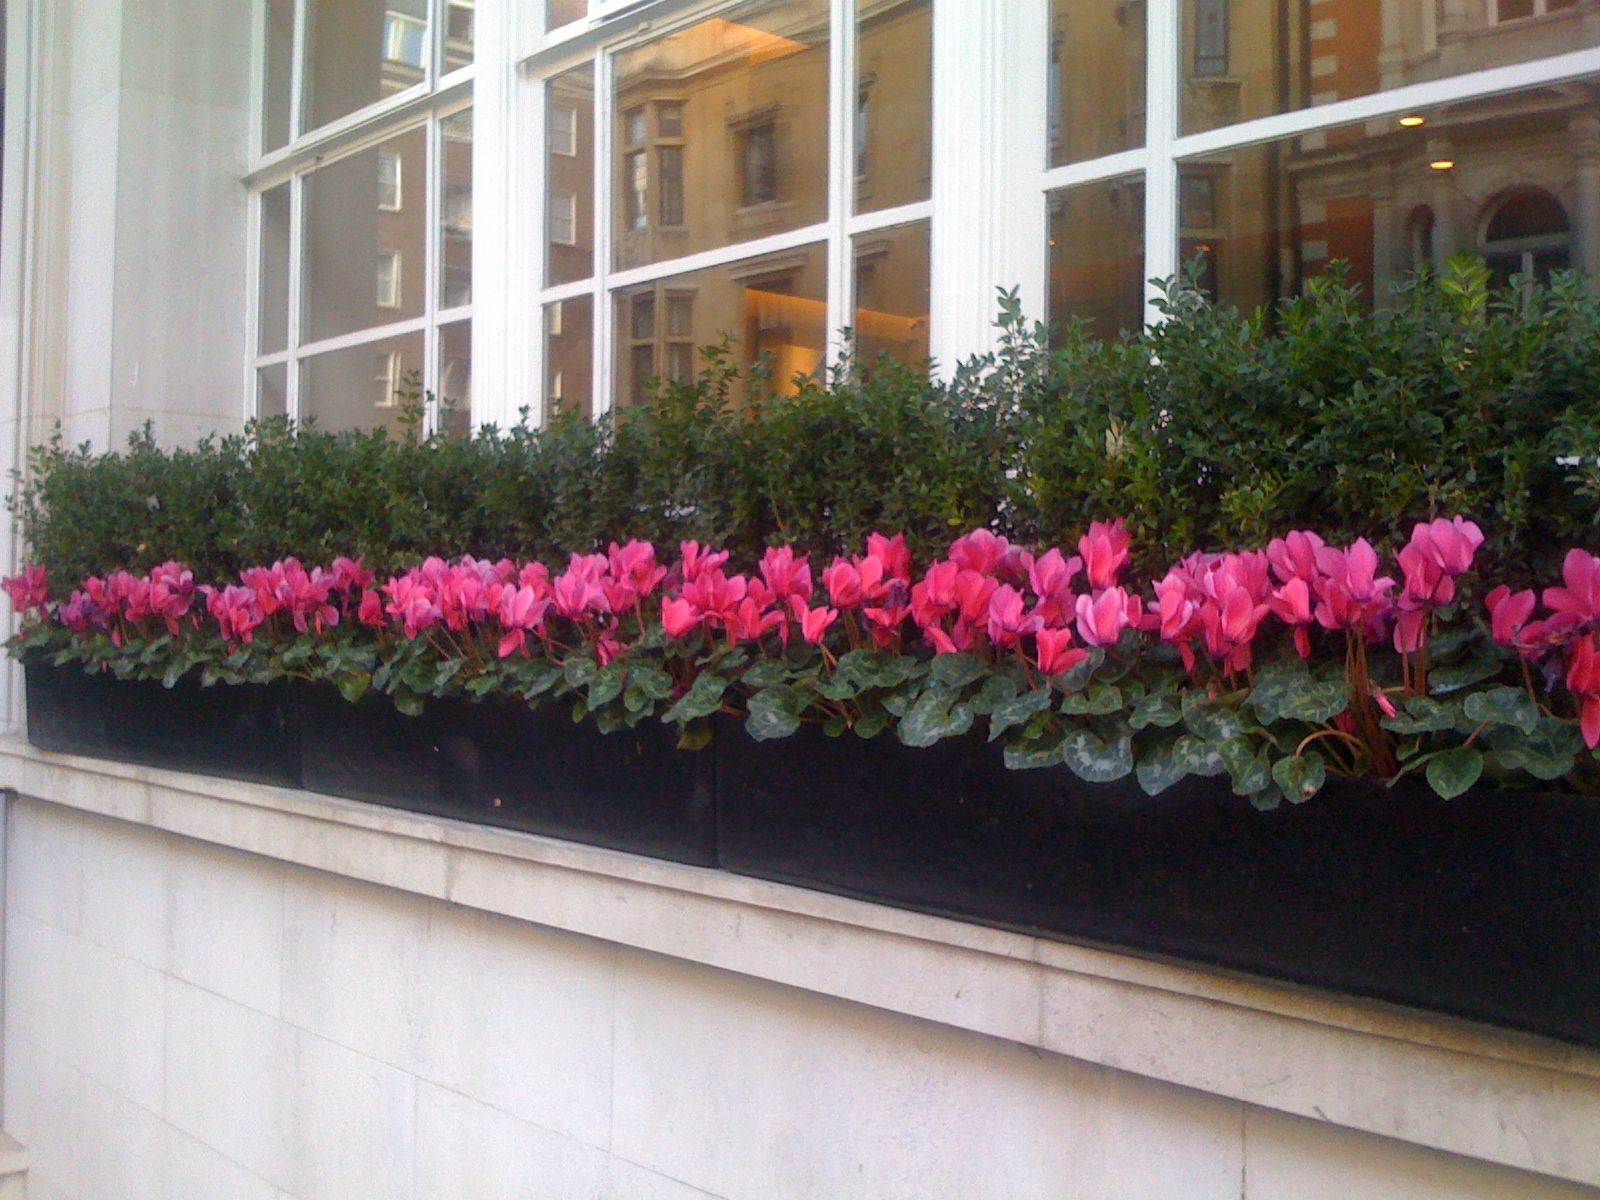 Christmas window box filler - Buxus And Pink Cyclamen Make For A Striking Looking Planted Window Box